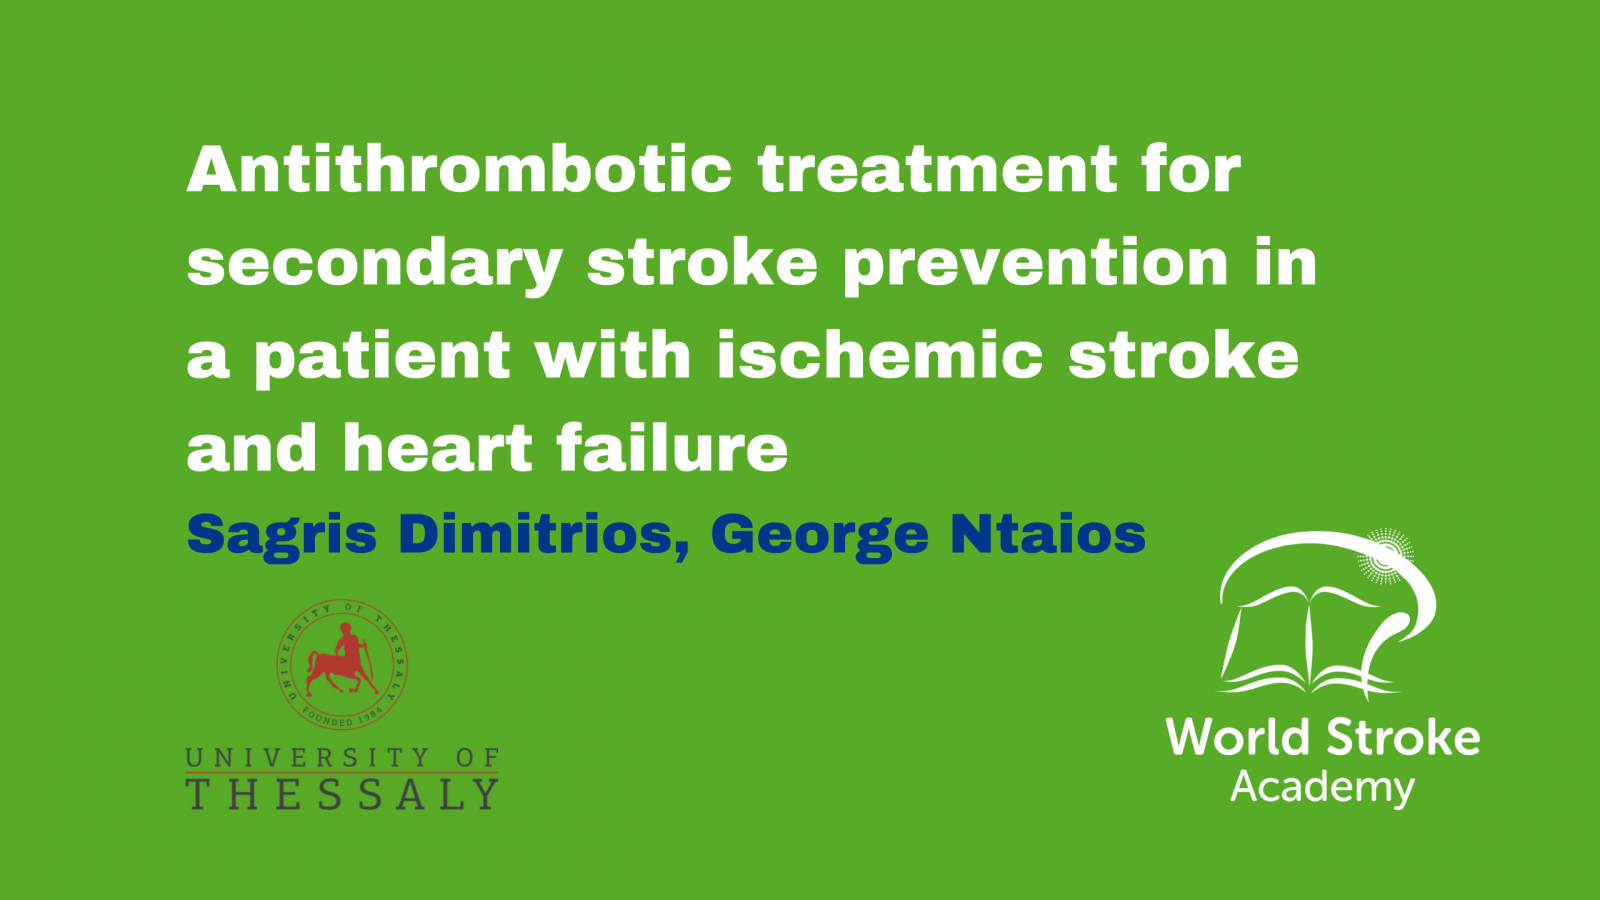 Antithrombotic treatment for secondary stroke prevention in a patient with ischemic stroke and heart failure